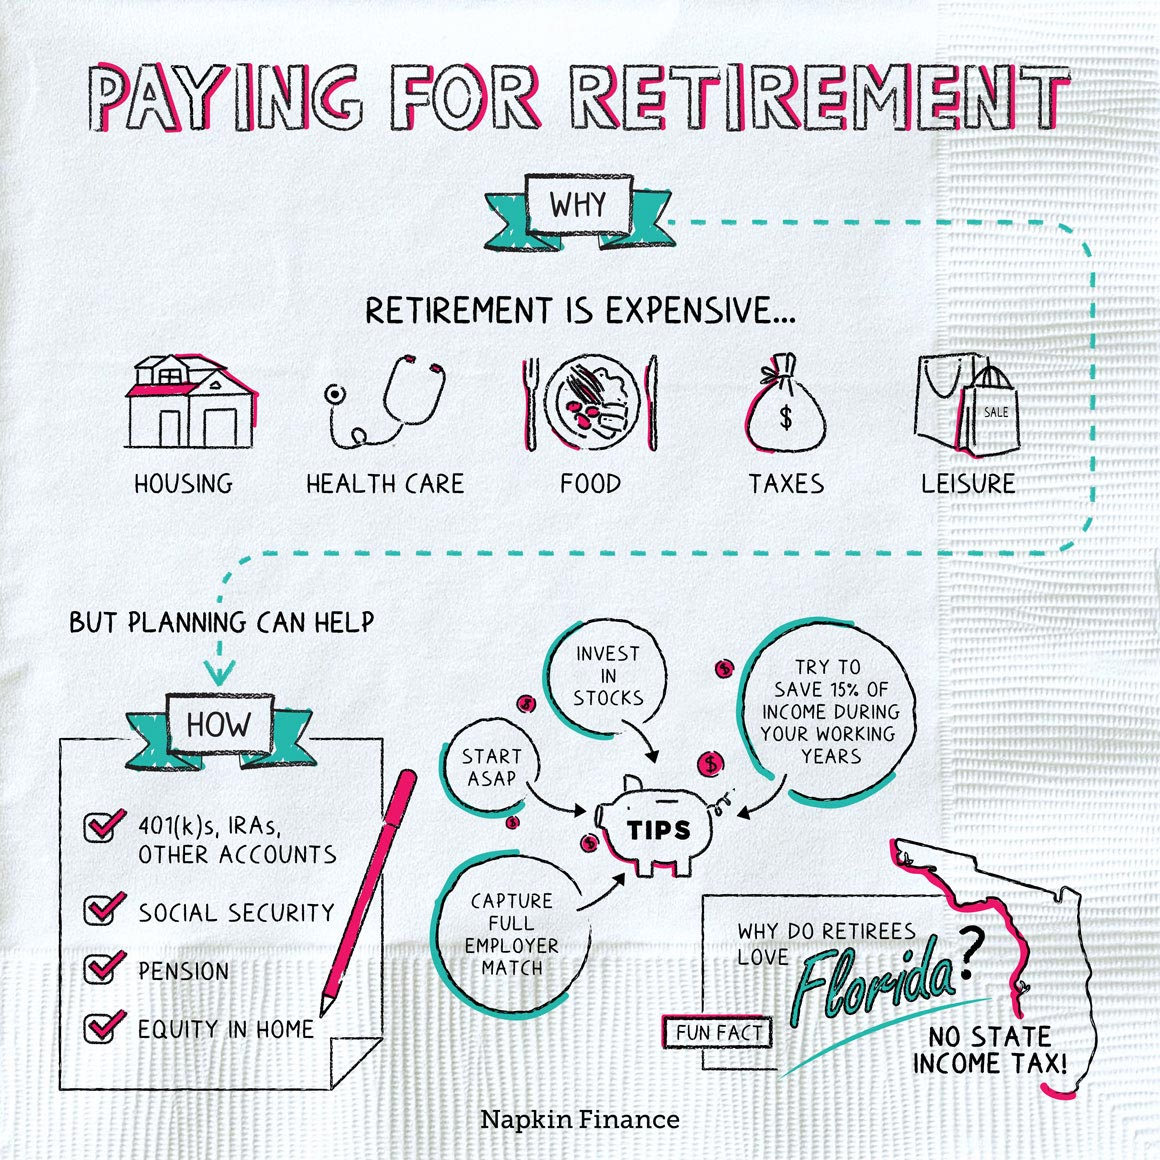 Paying For Retirement